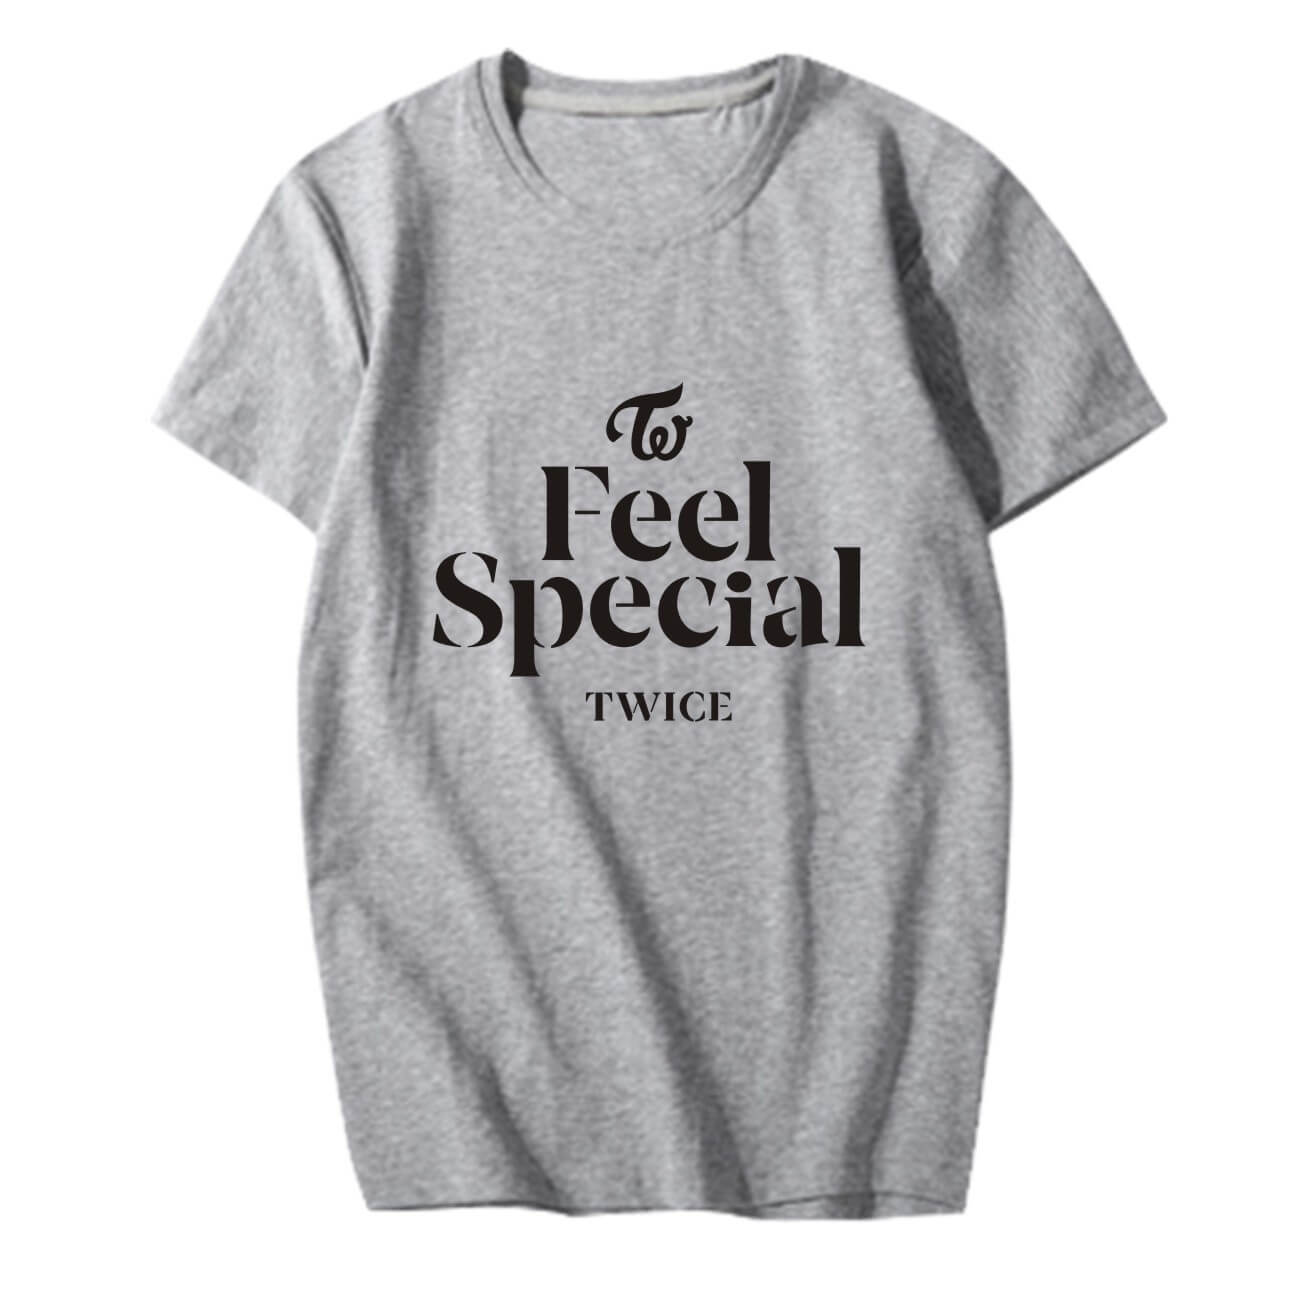 "TWICE ""Feel Special"" Album Printed T-shirt"